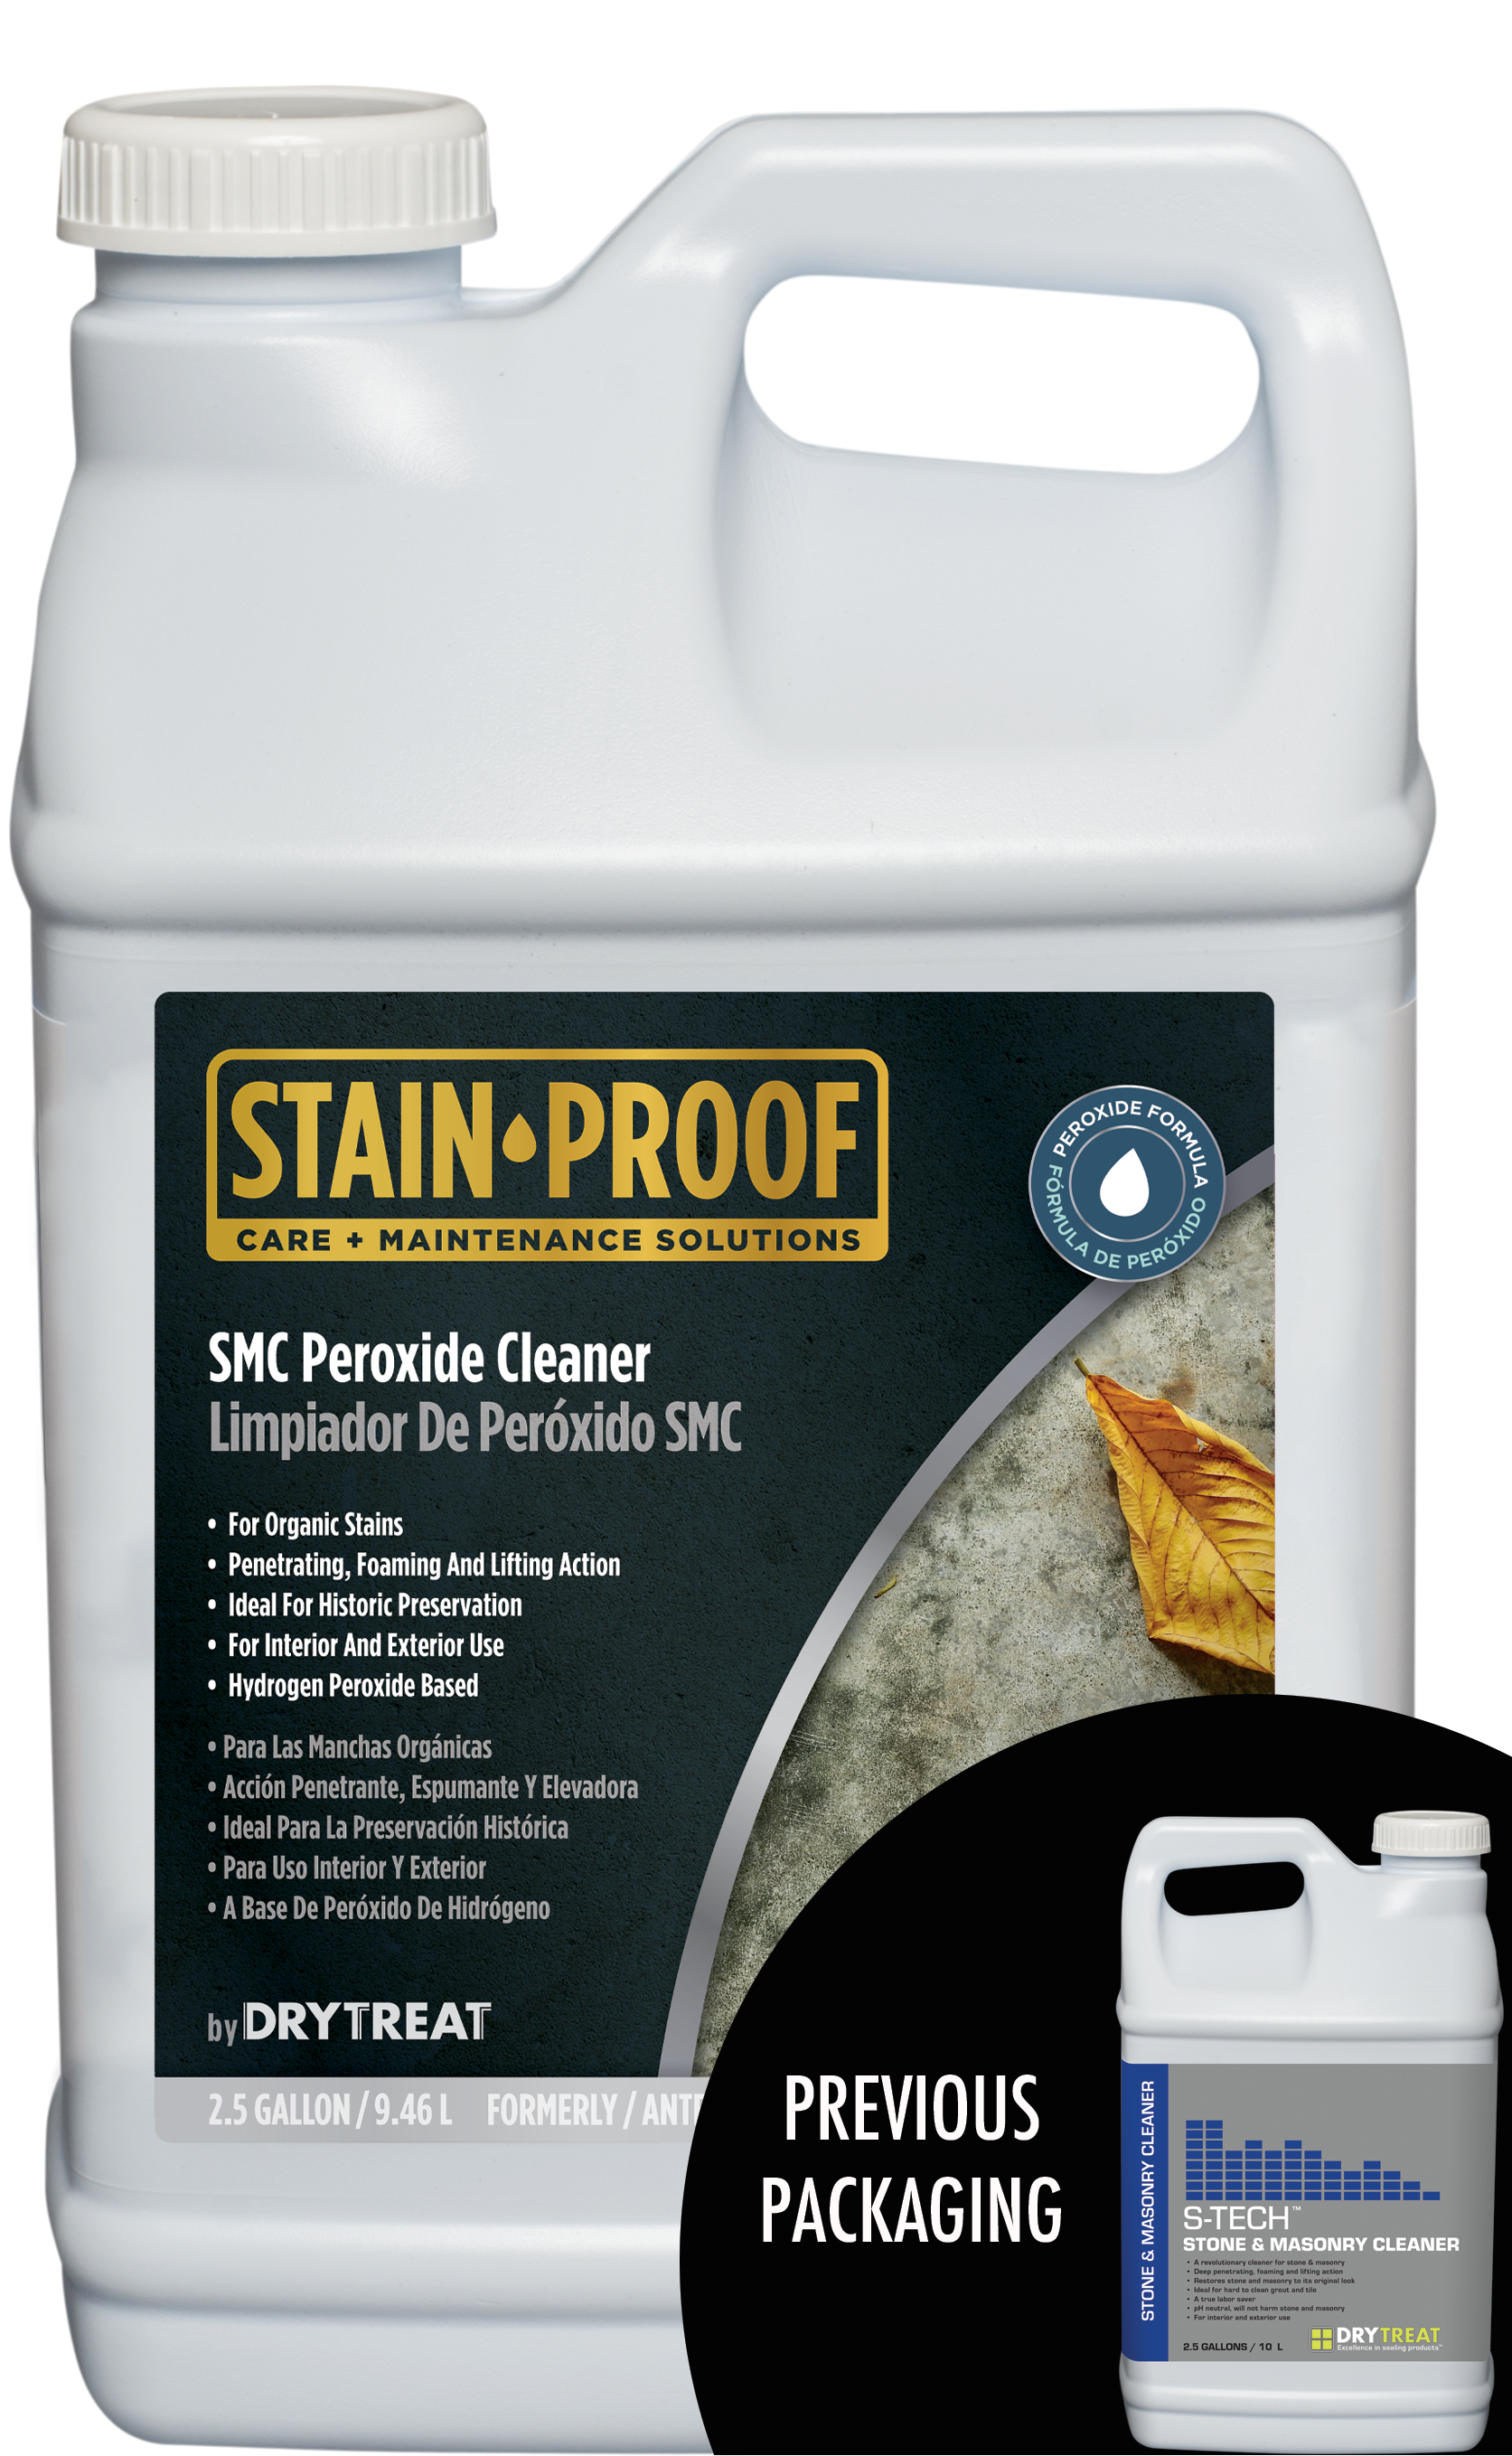 Stain Proof Smc Peroxide Cleaner